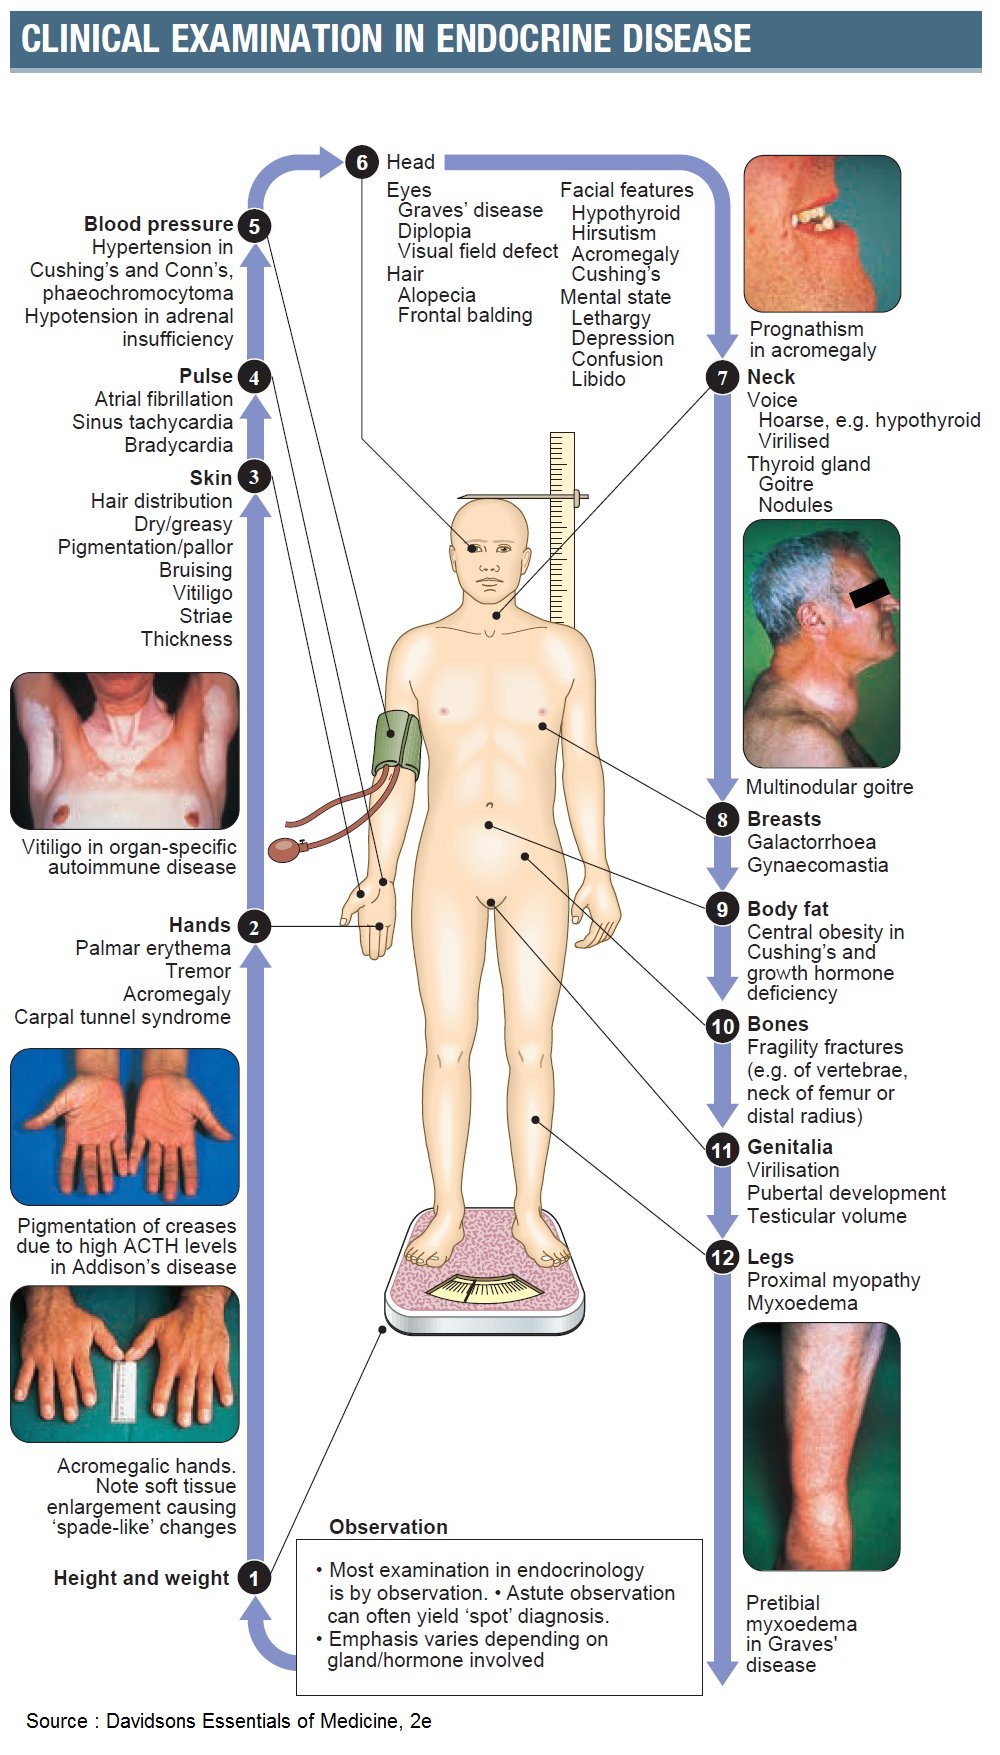 Clinical Examination in Endocrine Diseases #Endocrinology